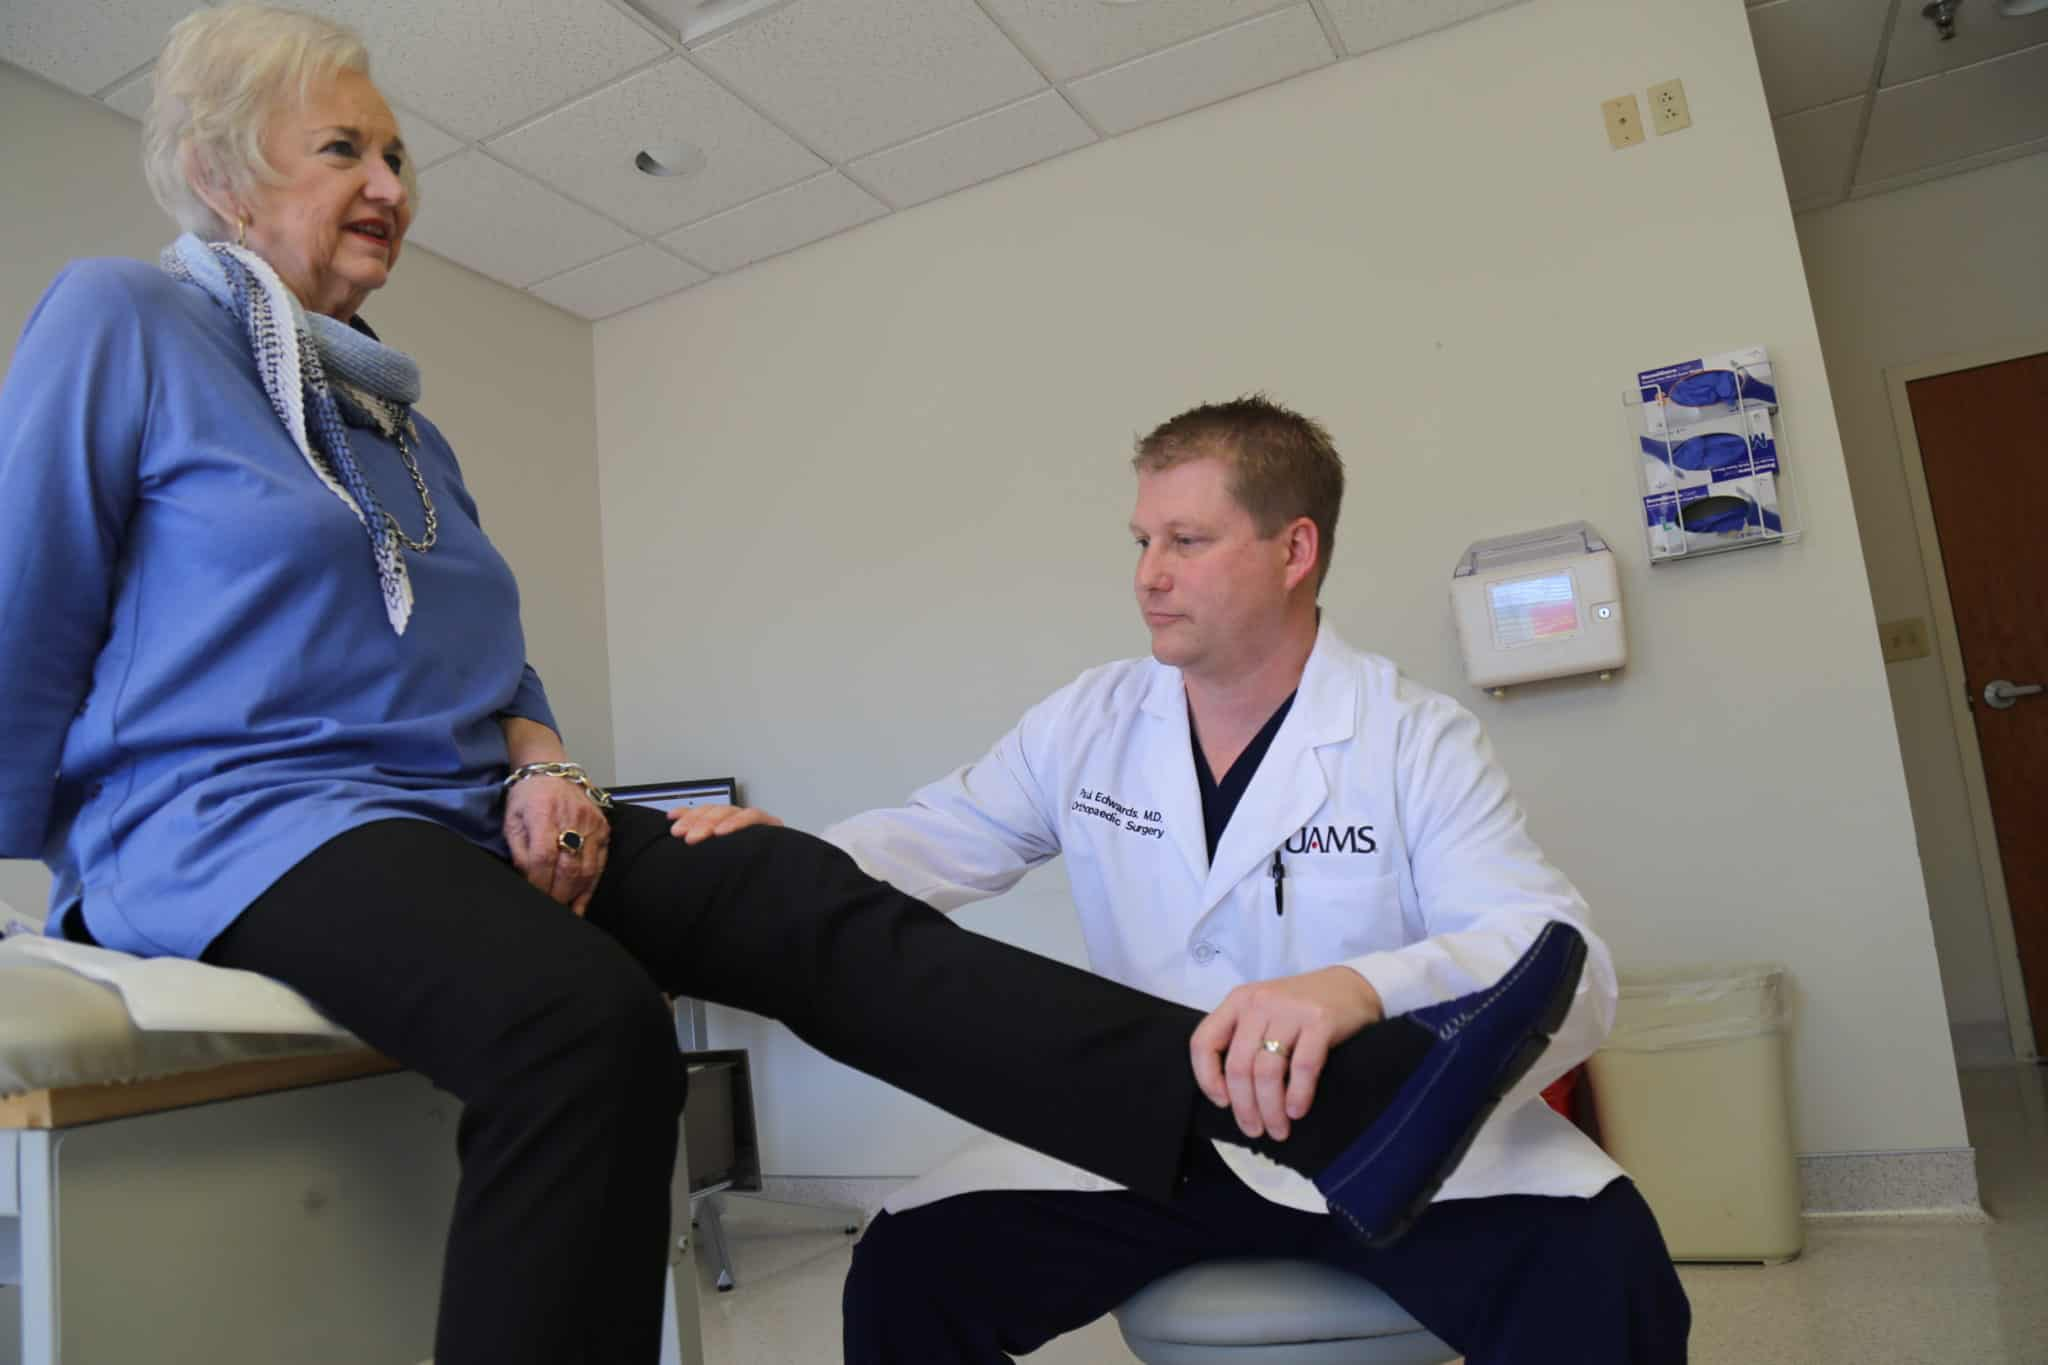 Dr. Edwards examines a patient's leg